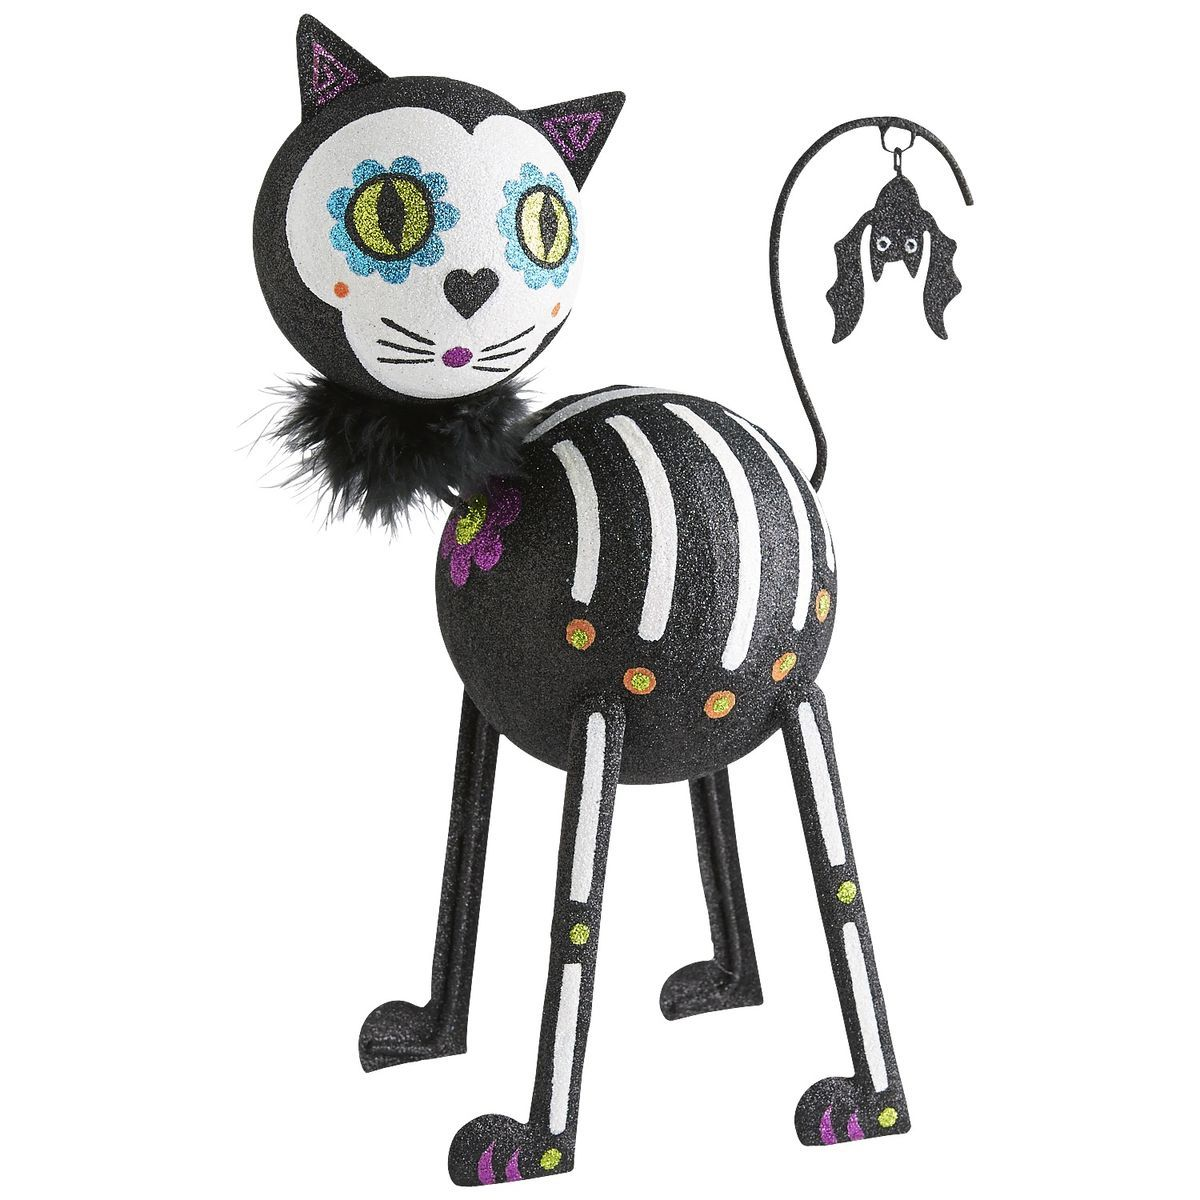 Glitter Skeleton Cat | Pier 1 Imports  sc 1 st  Pinterest & Glitter Skeleton Cat | Pier 1 Imports | Halloween | Pinterest ...